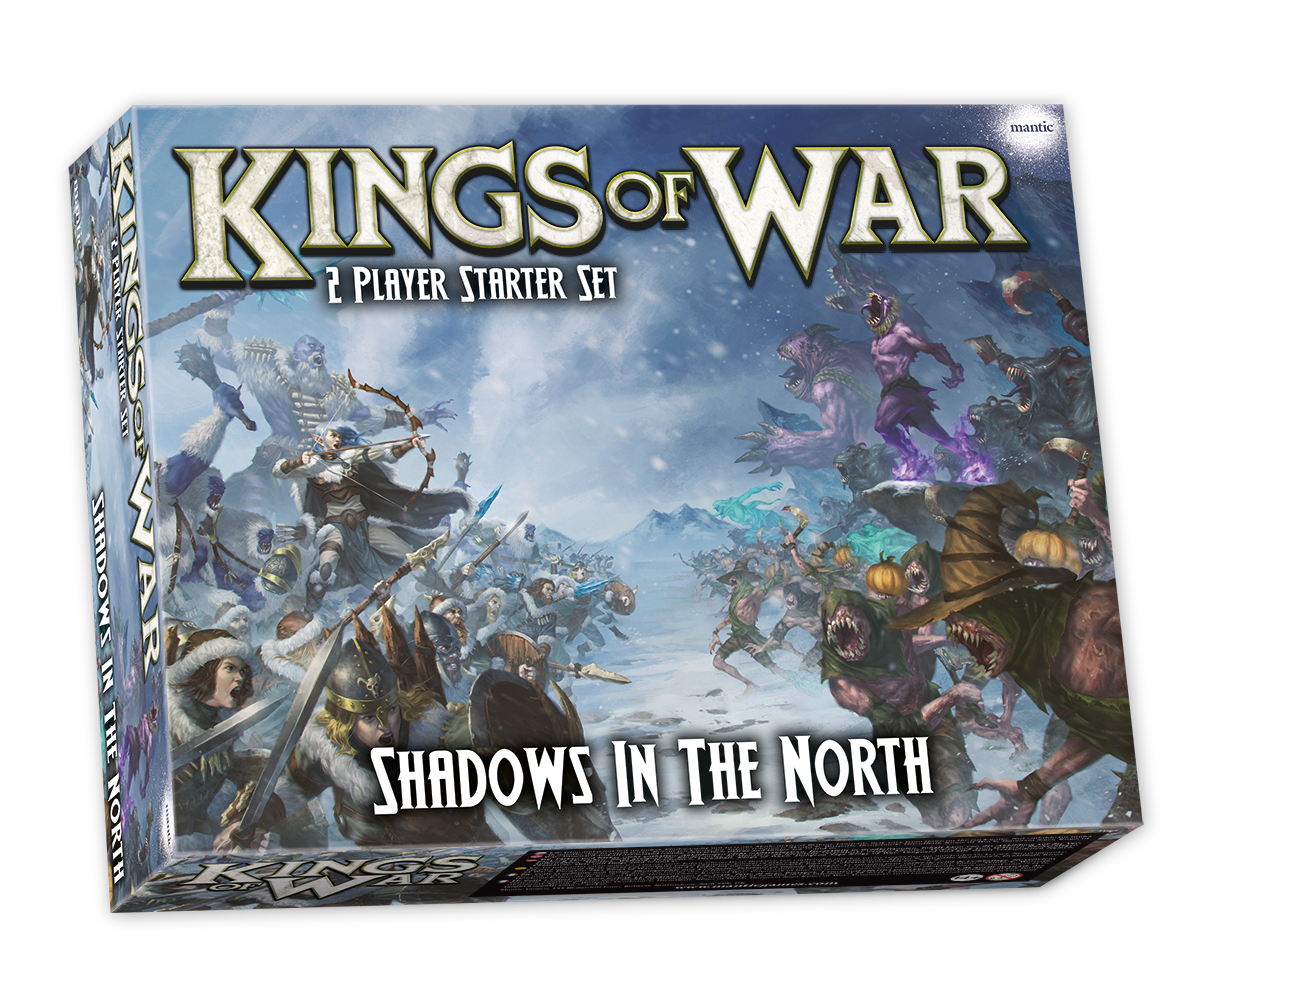 Shadows in the North: Kings of War 2-Player Starter Set (EN) Third Edition - English